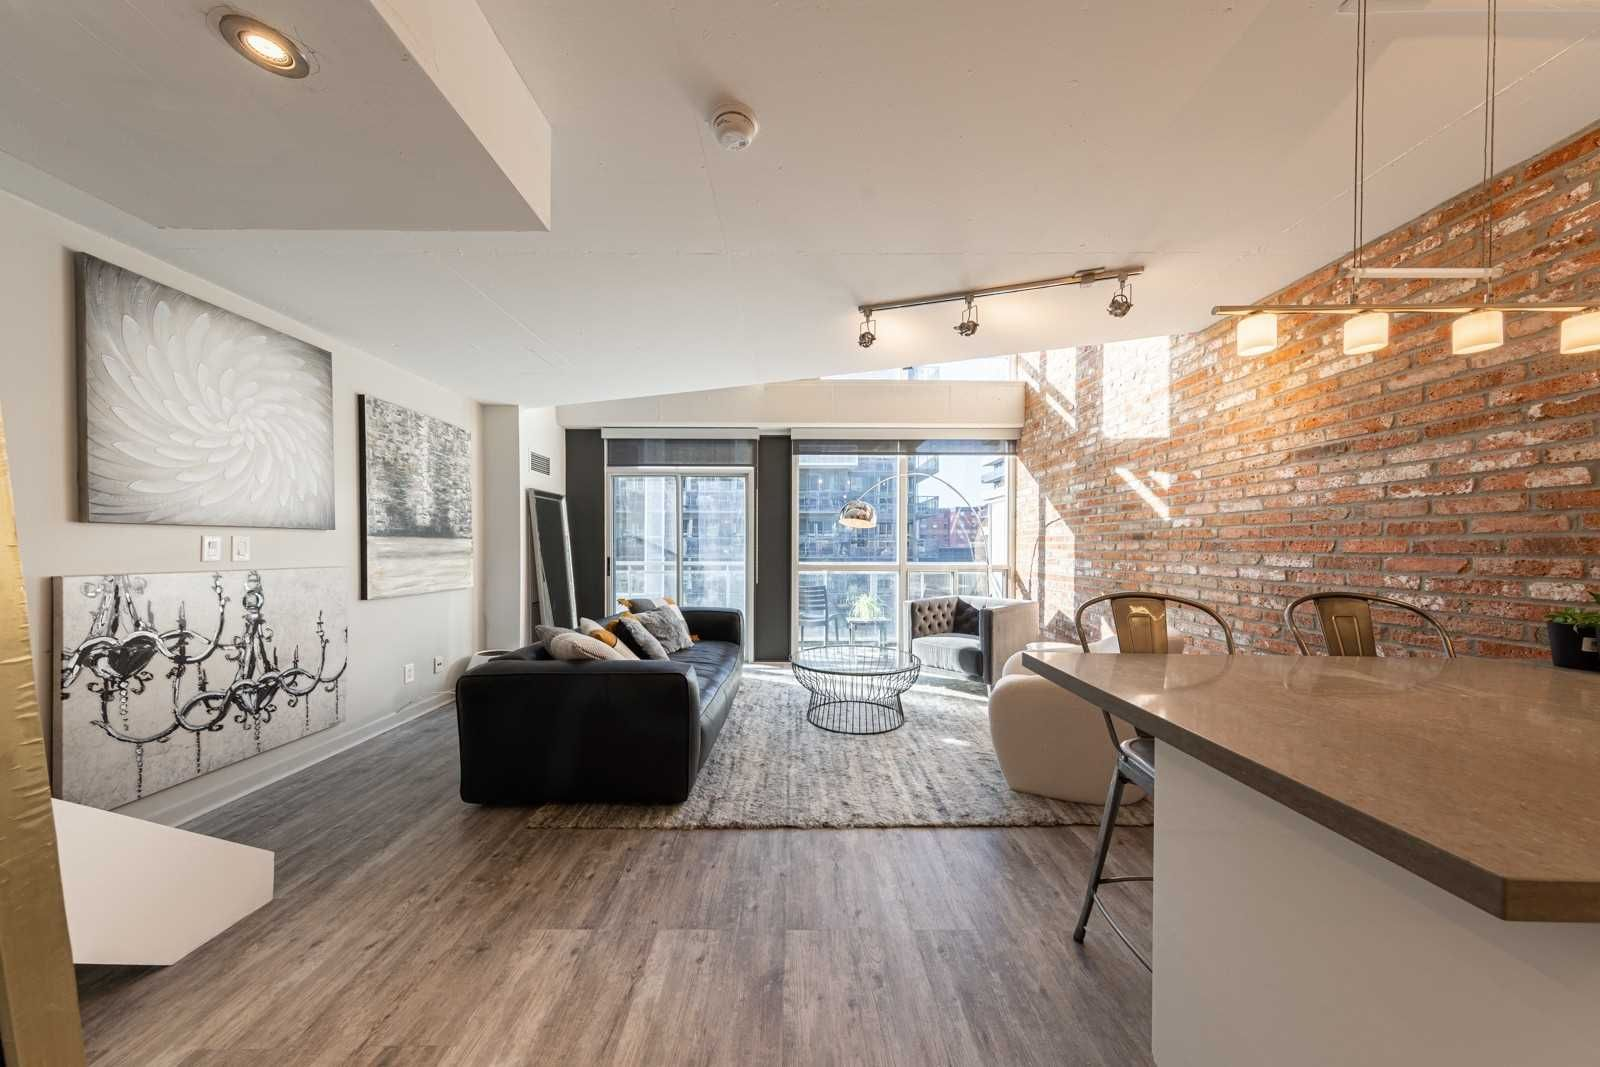 1029 King St W, unit 615 for sale in King West - image #2